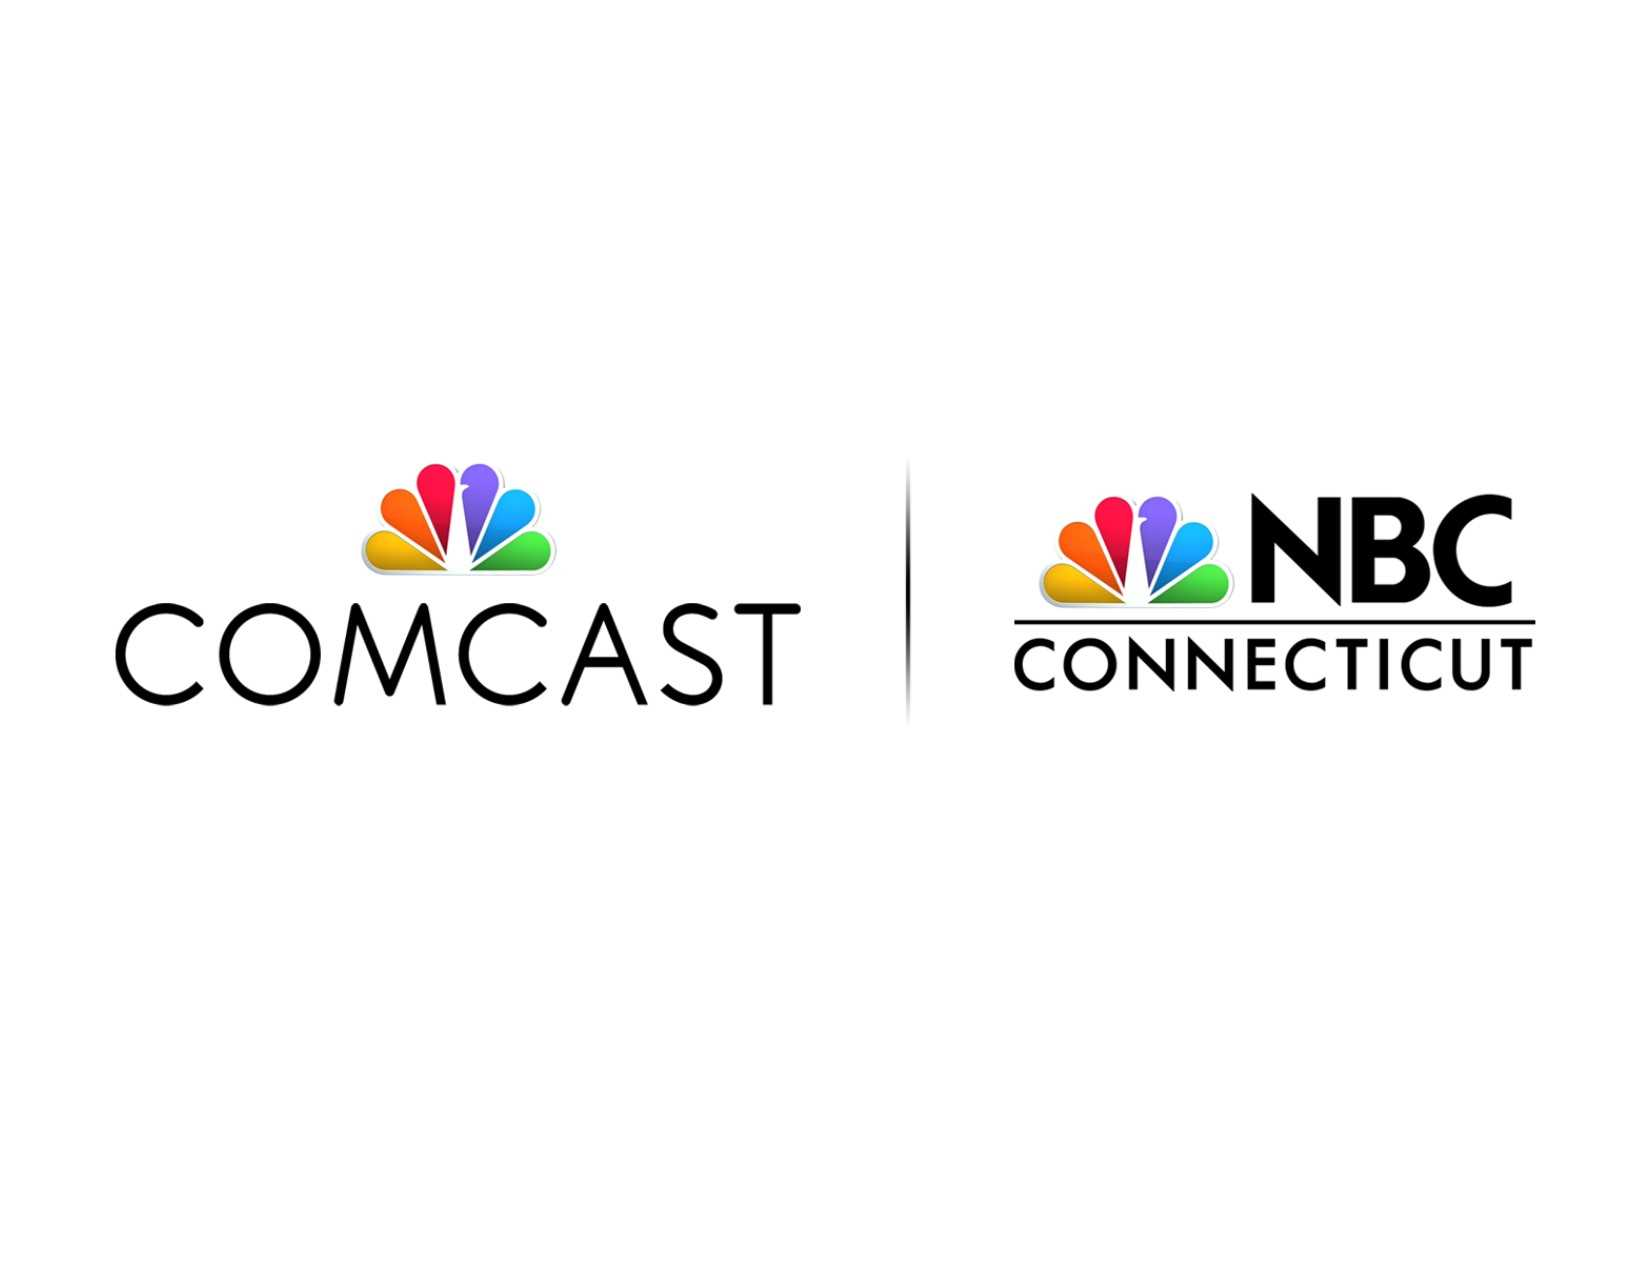 NBC-Comcast